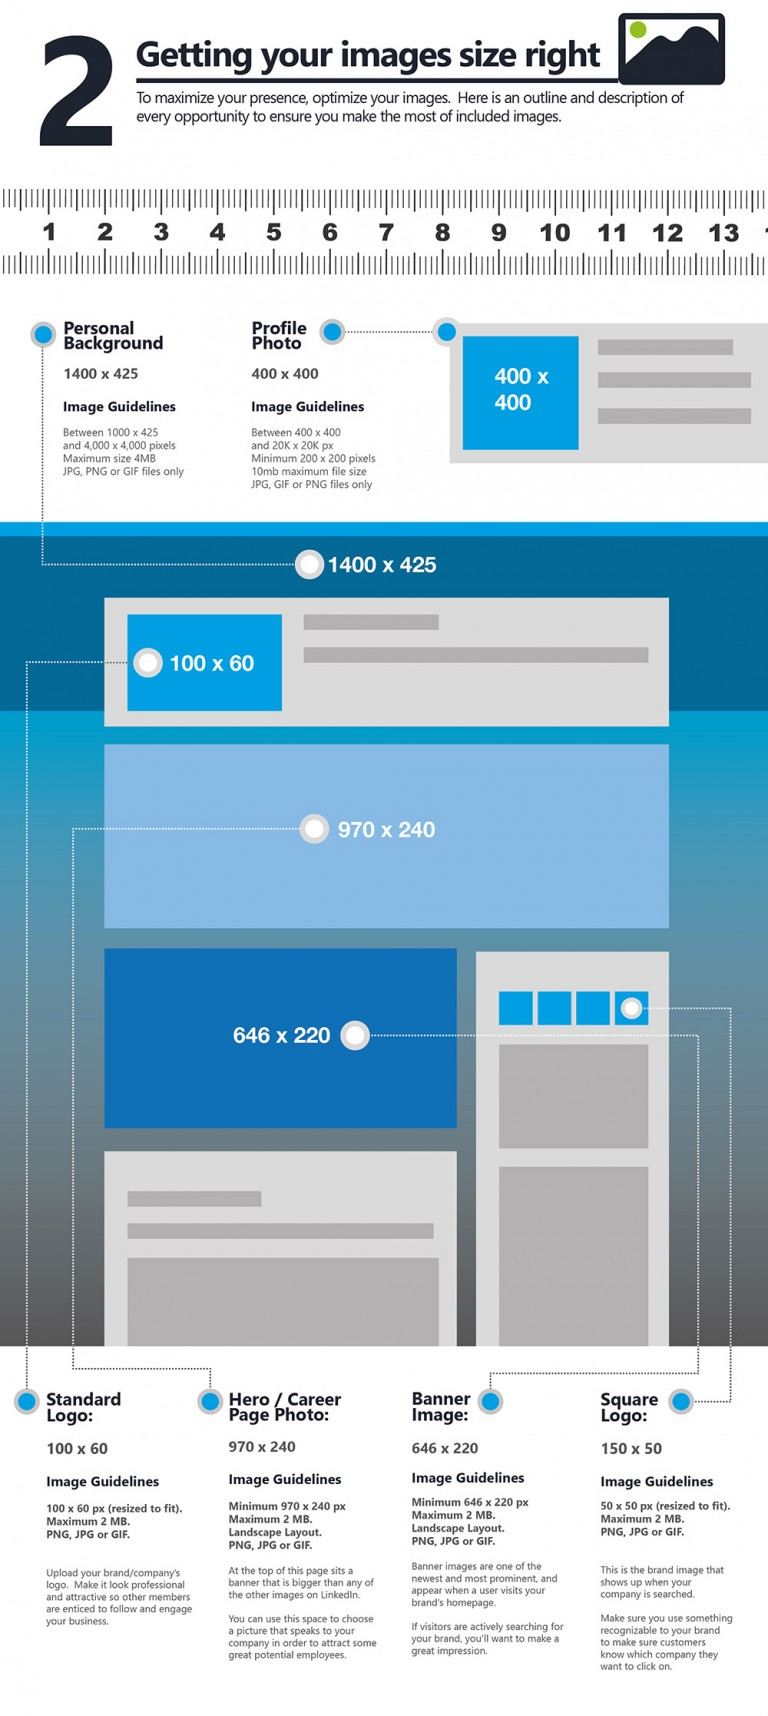 Right image size for LinkedIn